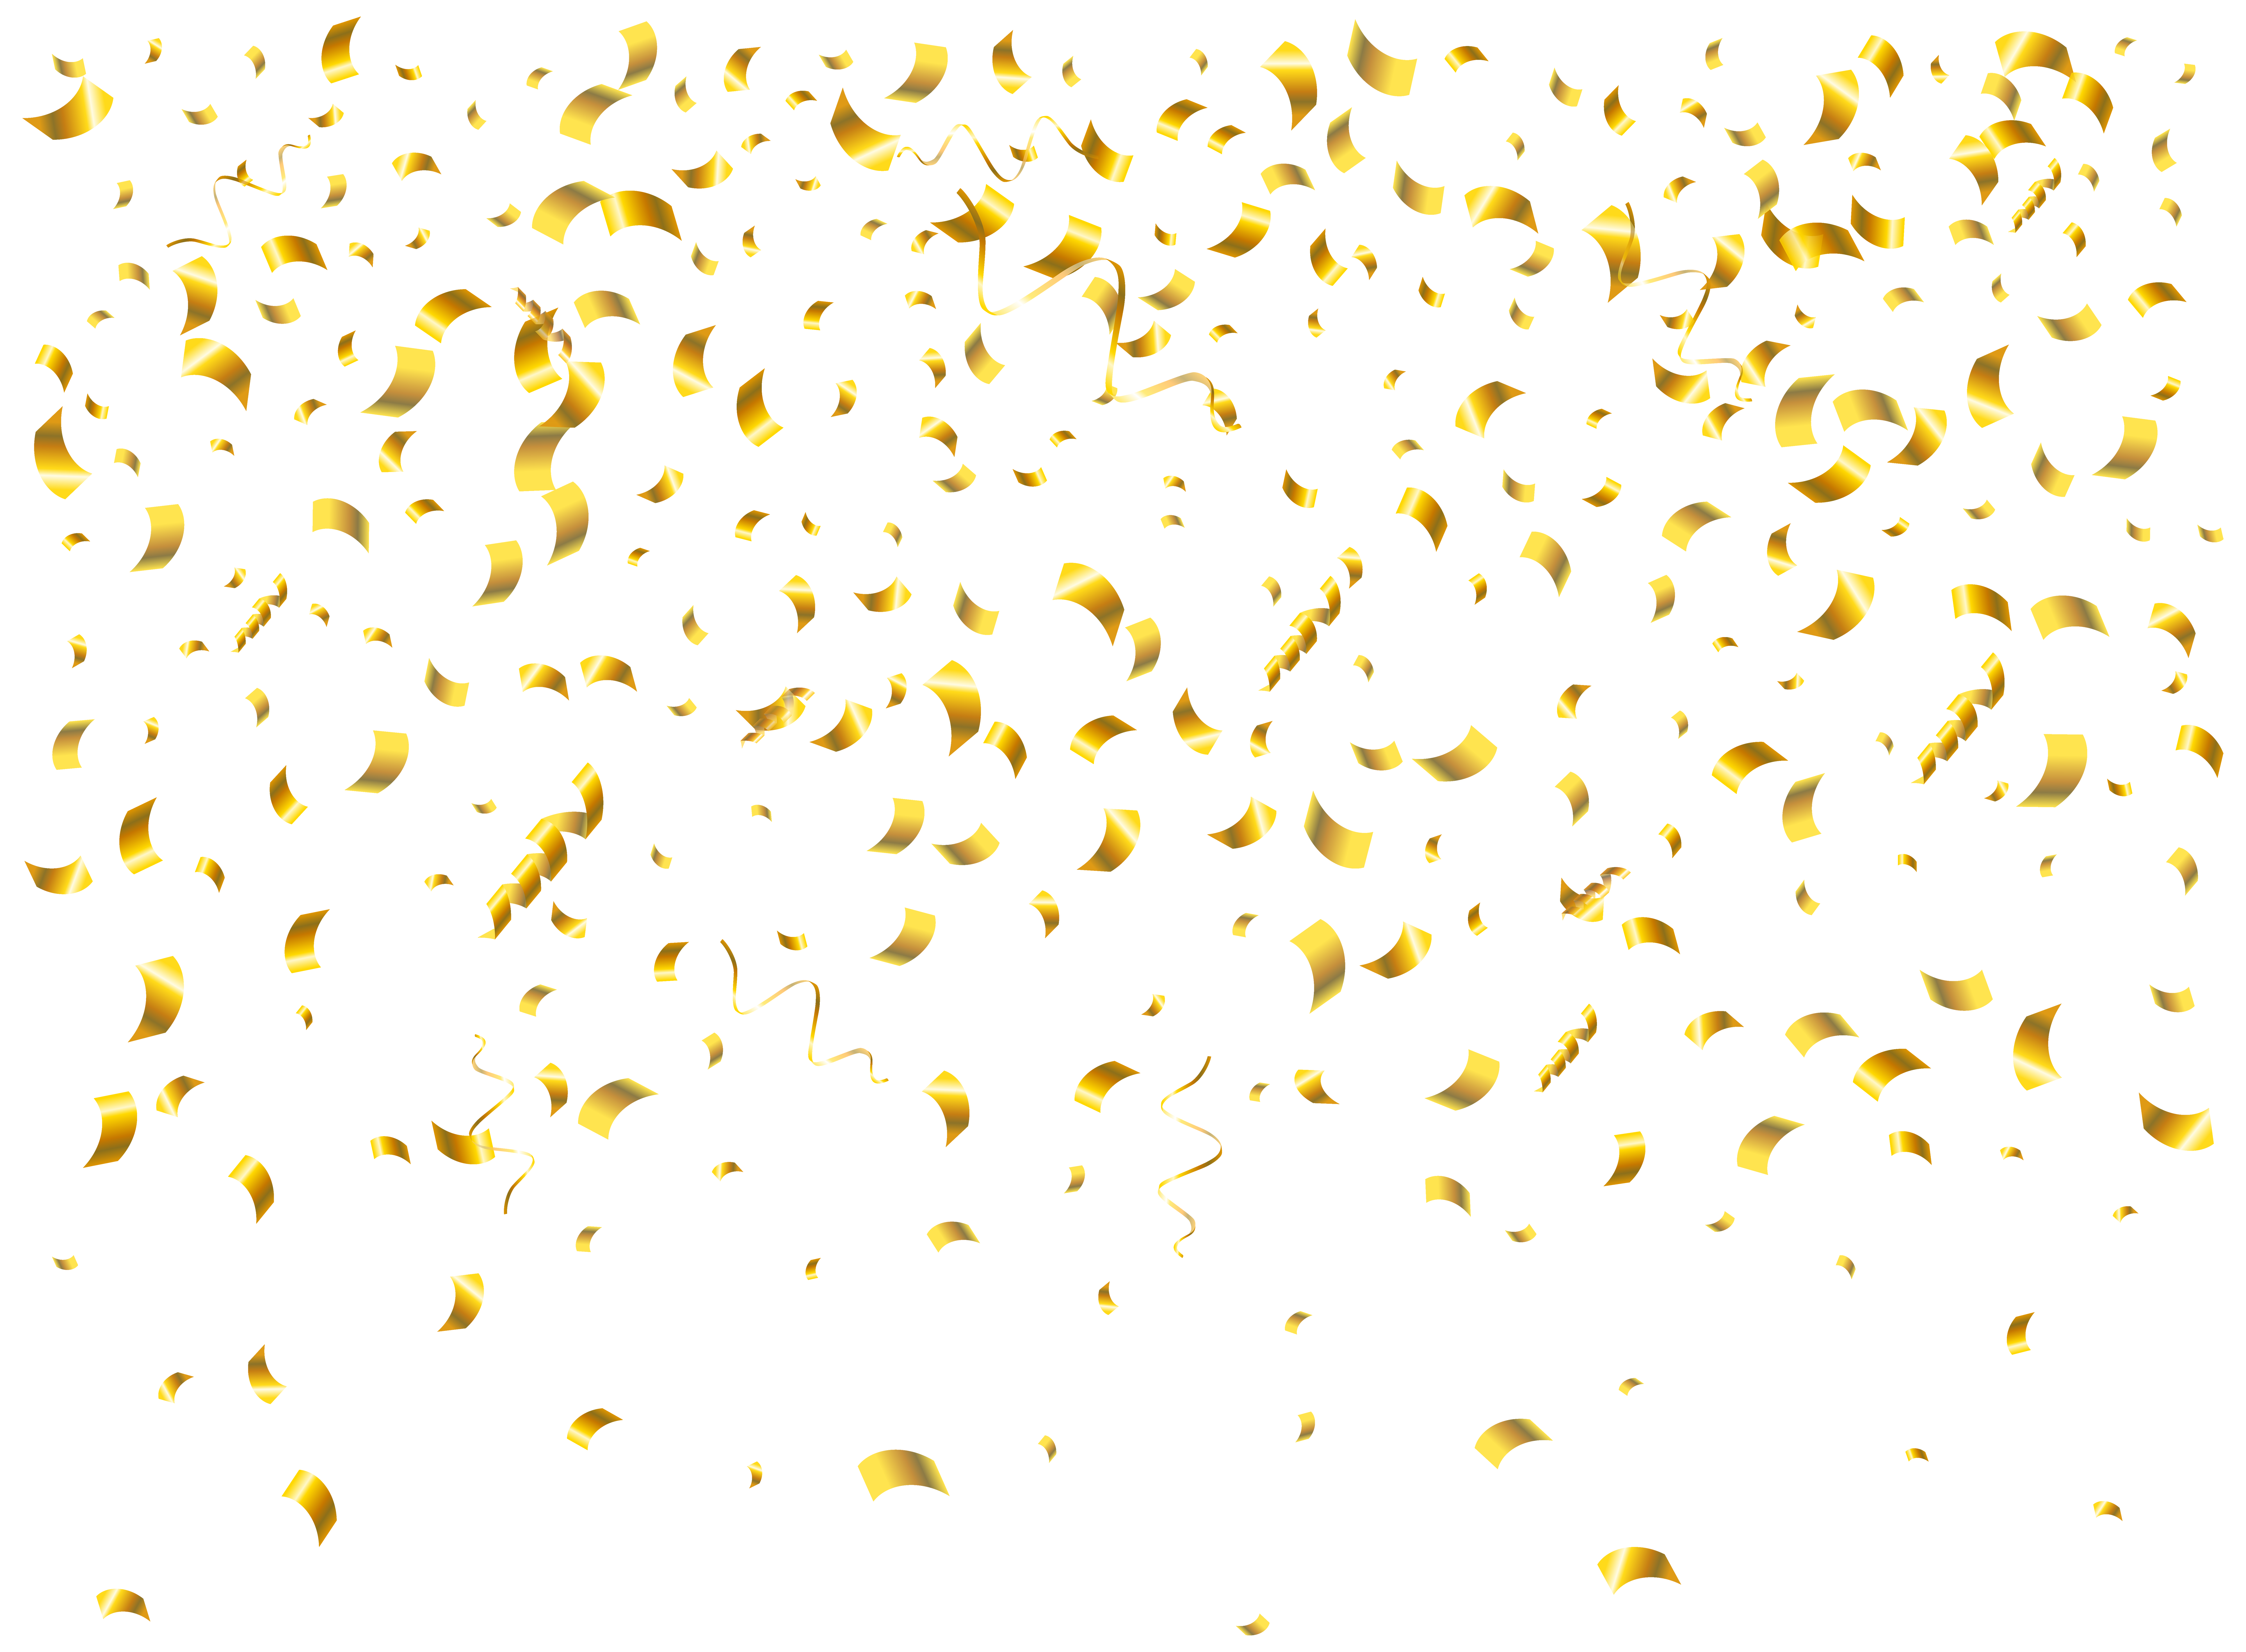 Confetti transparent background png. Clip art image gallery